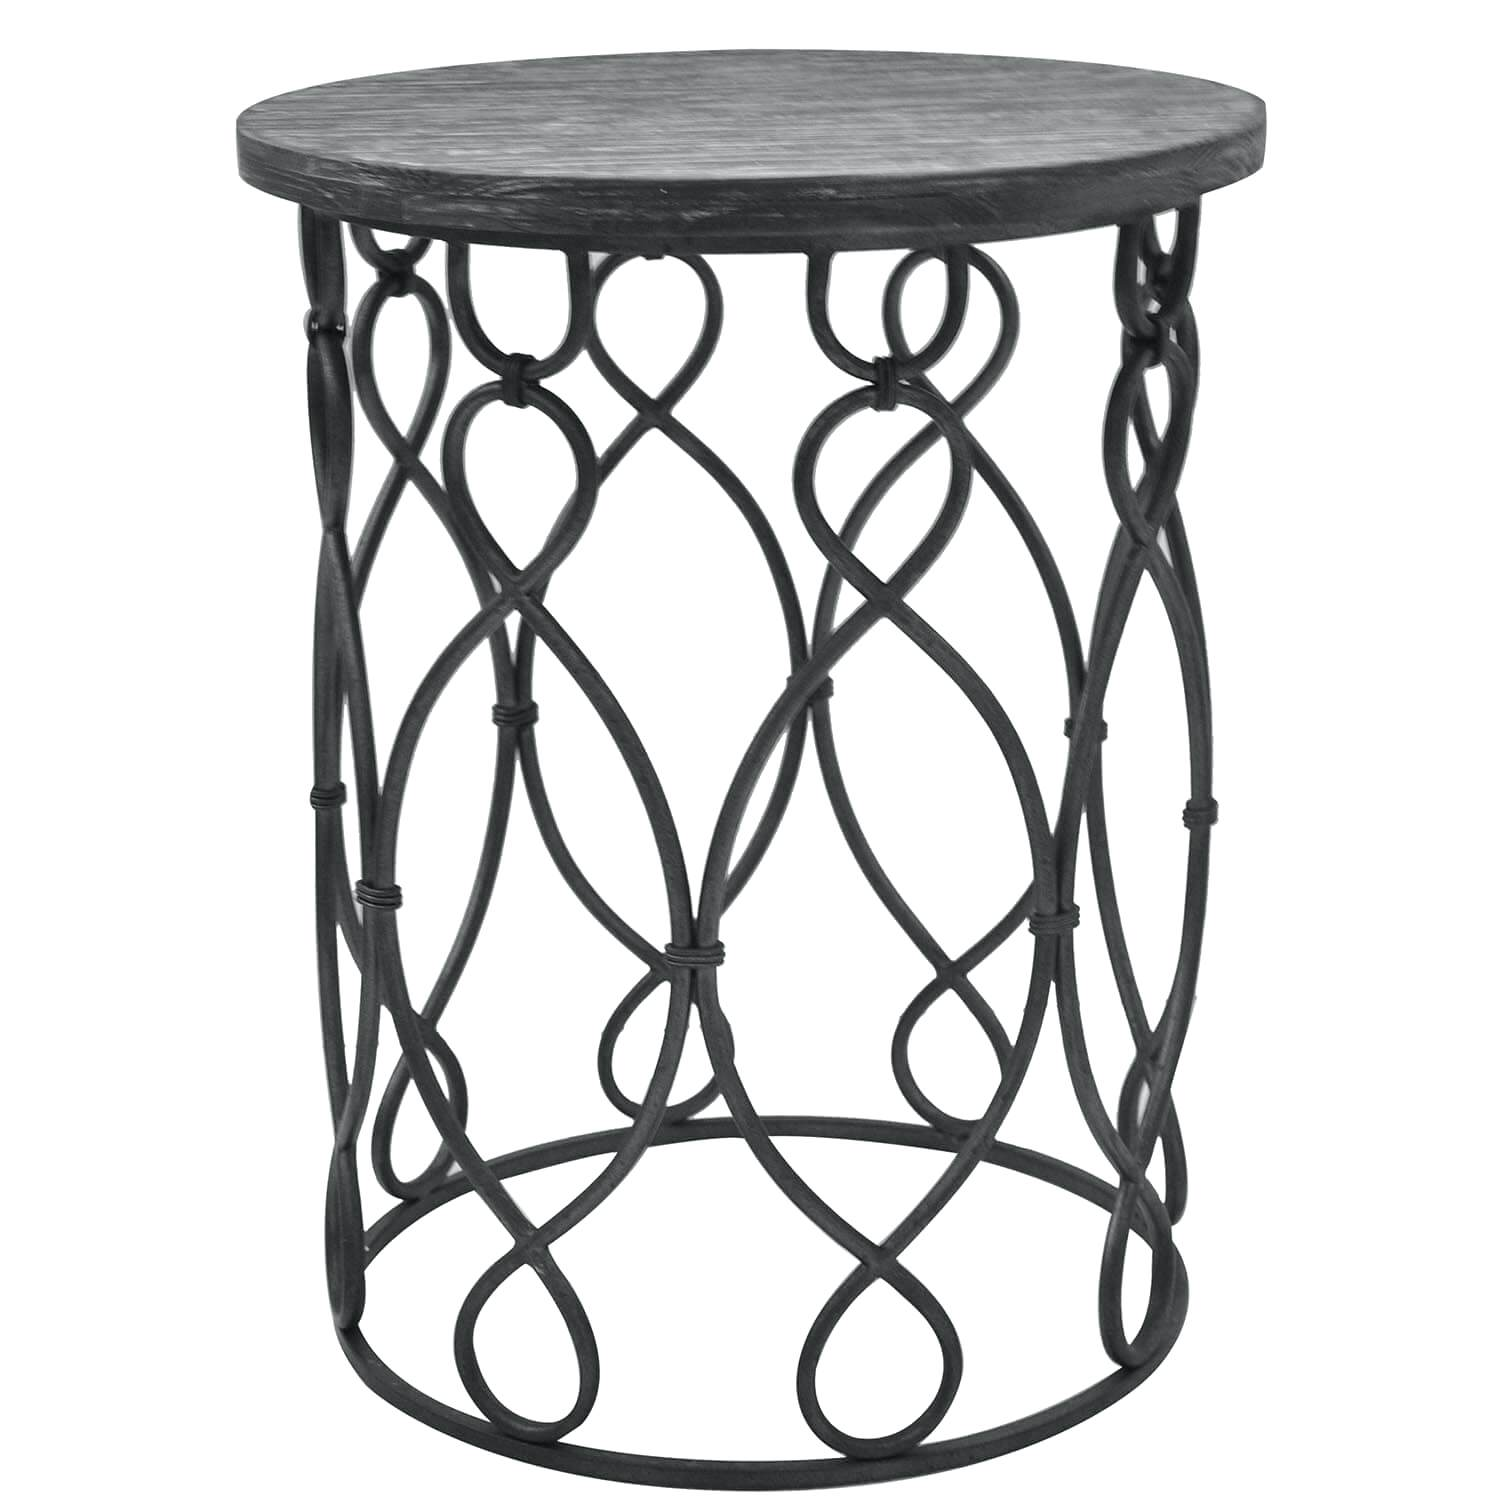 metal accent table vupad grand junction wood and target white home decor dale tiffany wall art room essentials furniture drinking glass sets resin outdoor side wicker cocktail